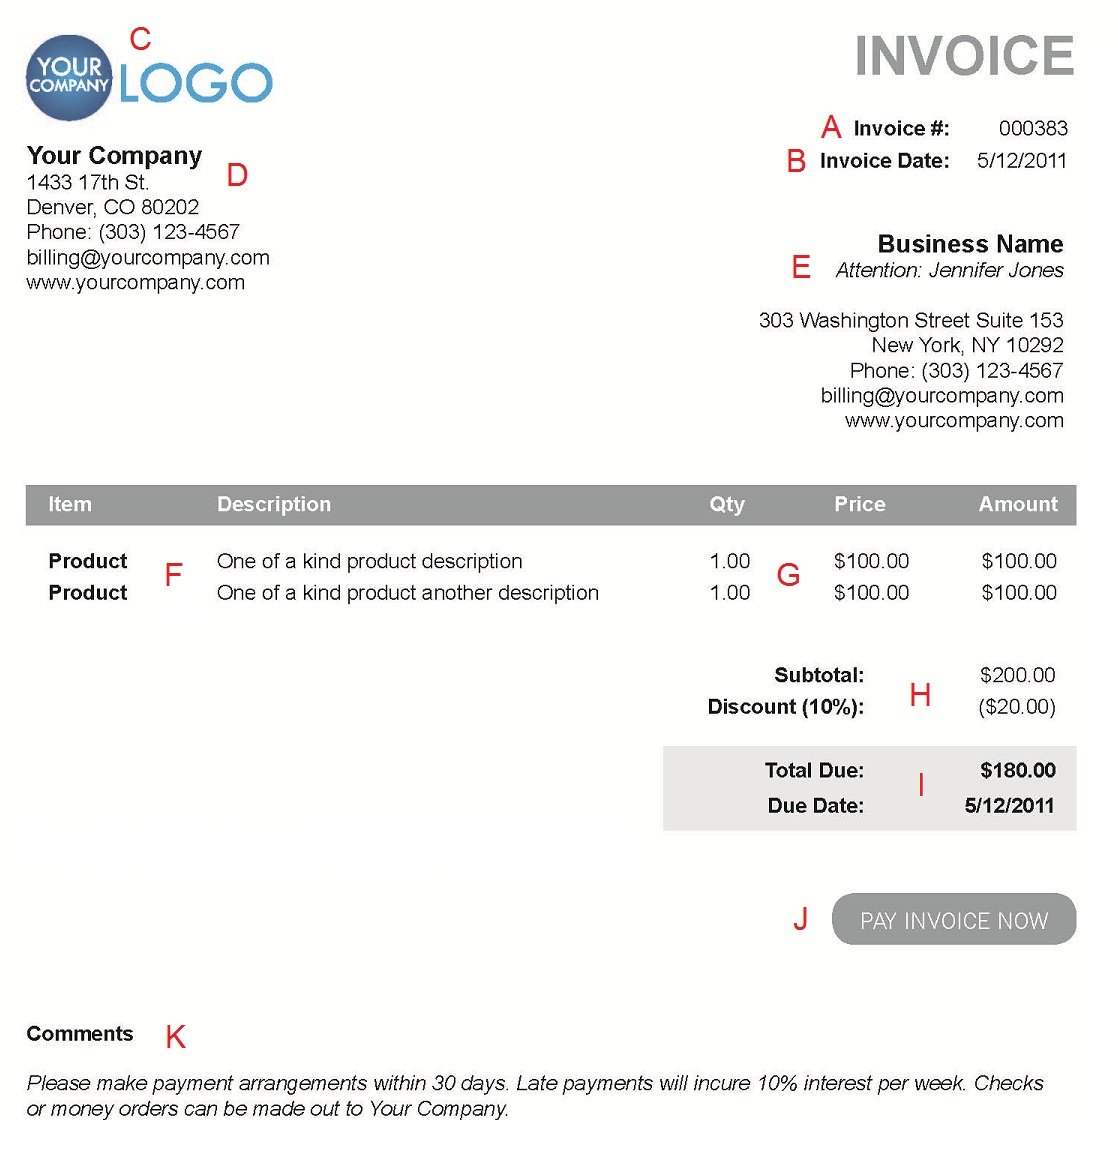 Citcoagencyincus  Sweet The  Different Sections Of An Electronic Payment Invoice With Licious A  With Cute Rogers Invoice Online Also Pay With Invoice In Addition Layout Of An Invoice And Proforma Tax Invoice As Well As Invoice Proforma Sample Additionally Free Invoice Forms Pdf From Paysimplecom With Citcoagencyincus  Licious The  Different Sections Of An Electronic Payment Invoice With Cute A  And Sweet Rogers Invoice Online Also Pay With Invoice In Addition Layout Of An Invoice From Paysimplecom